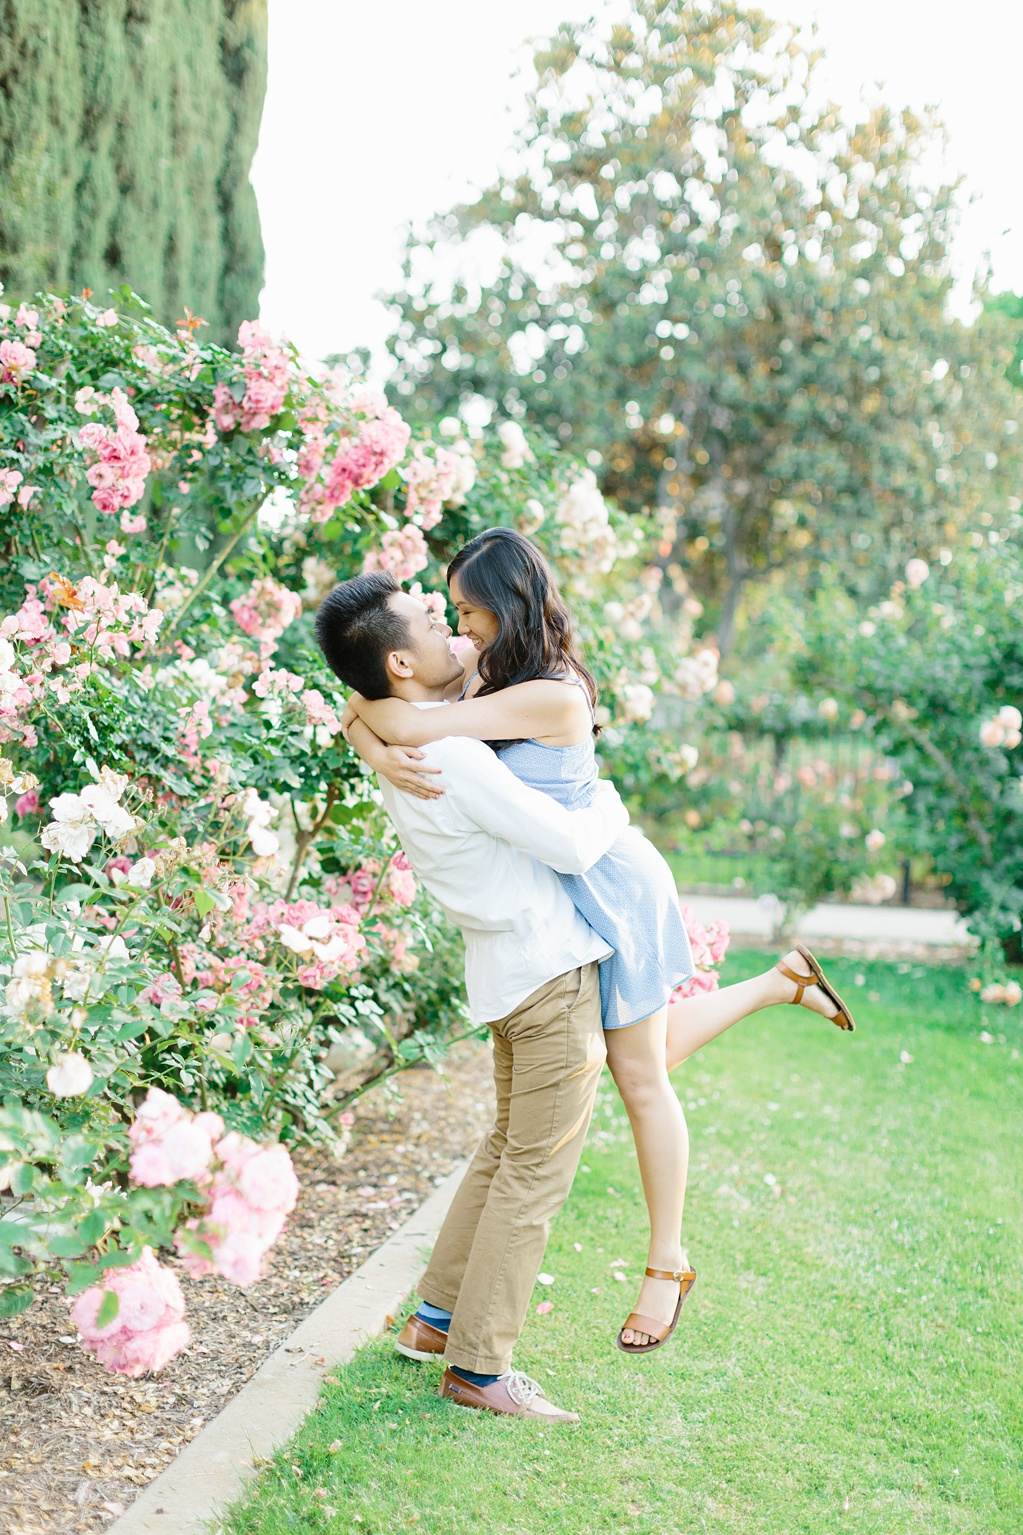 Elegant rose garden engagement shoot at Lacy Park in Pasadena by LA wedding photographer-Madison Ellis Photography (28)